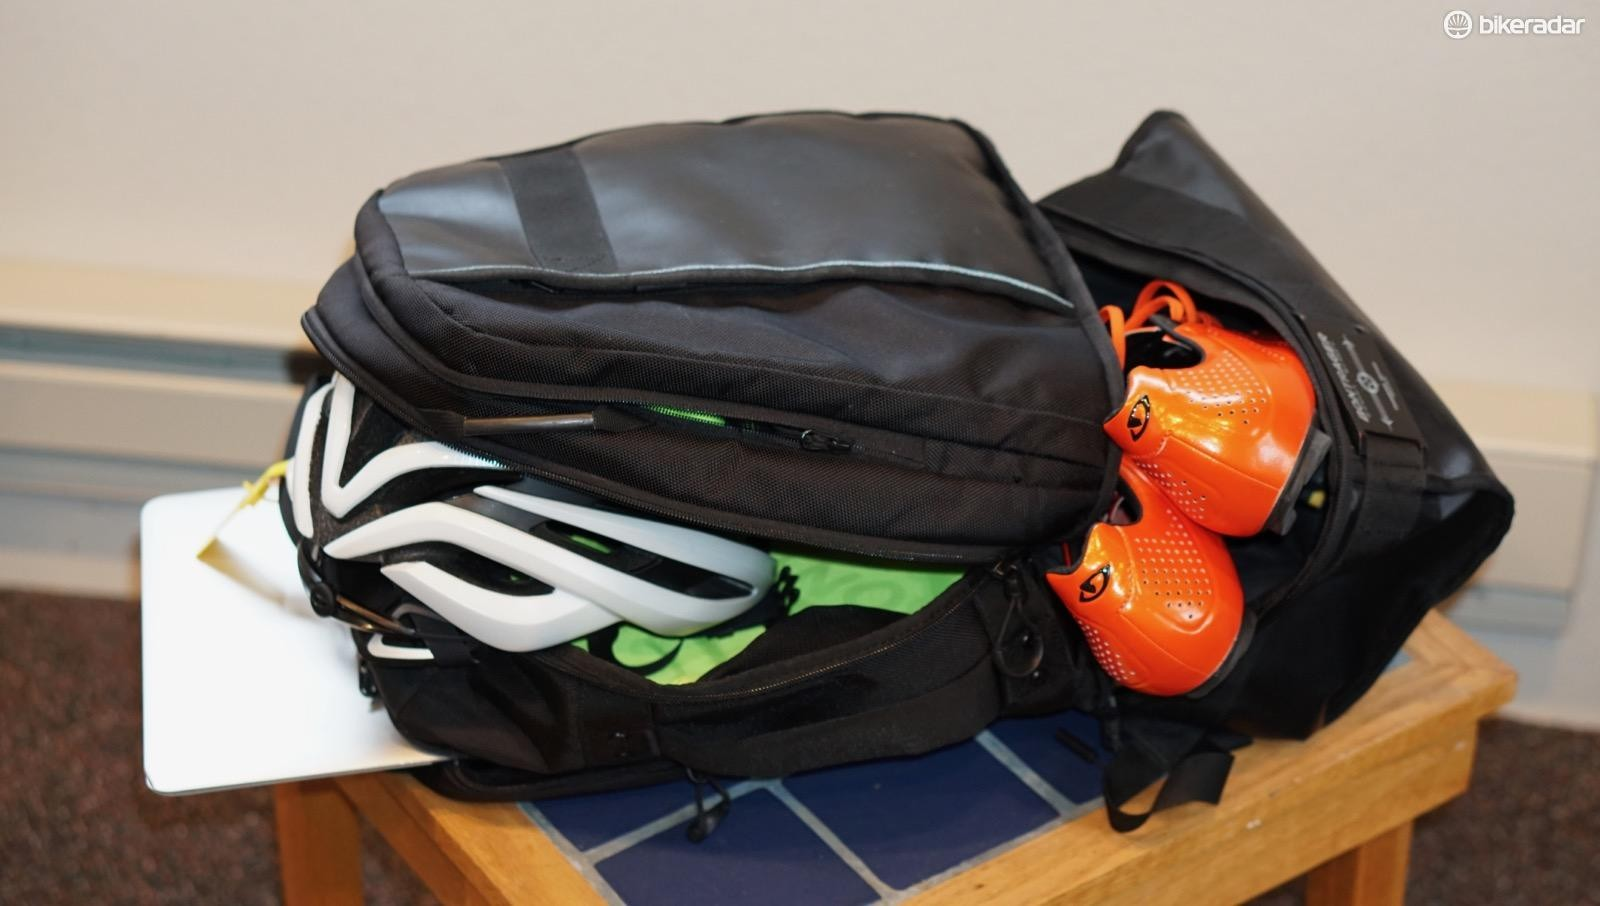 Bontrager's Harelbeke bag is what I used for every trip this year